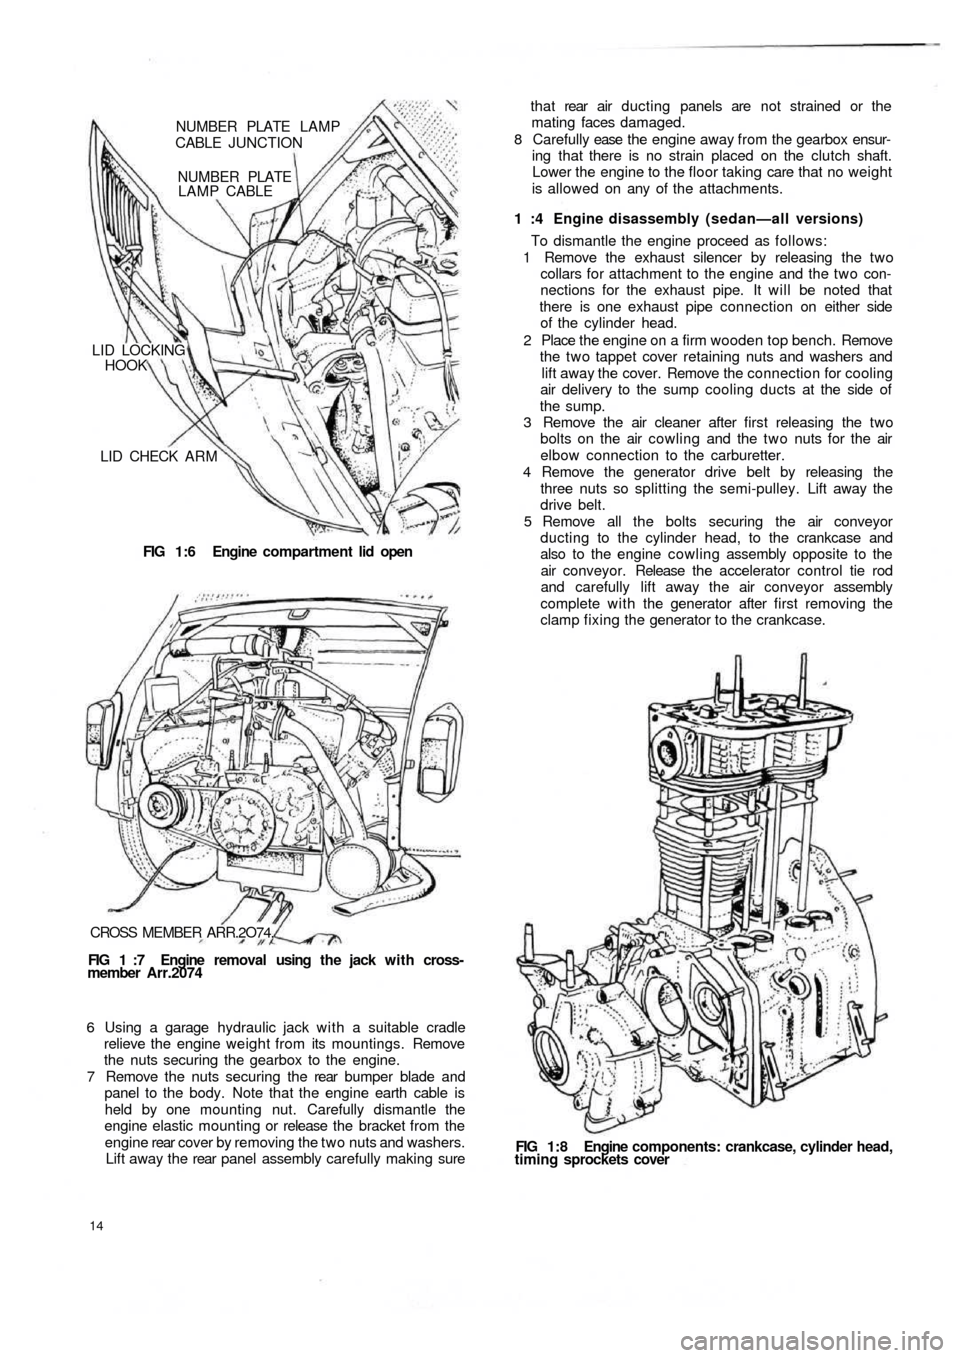 FIAT 500 1970 1.G Workshop Manual, Page 7